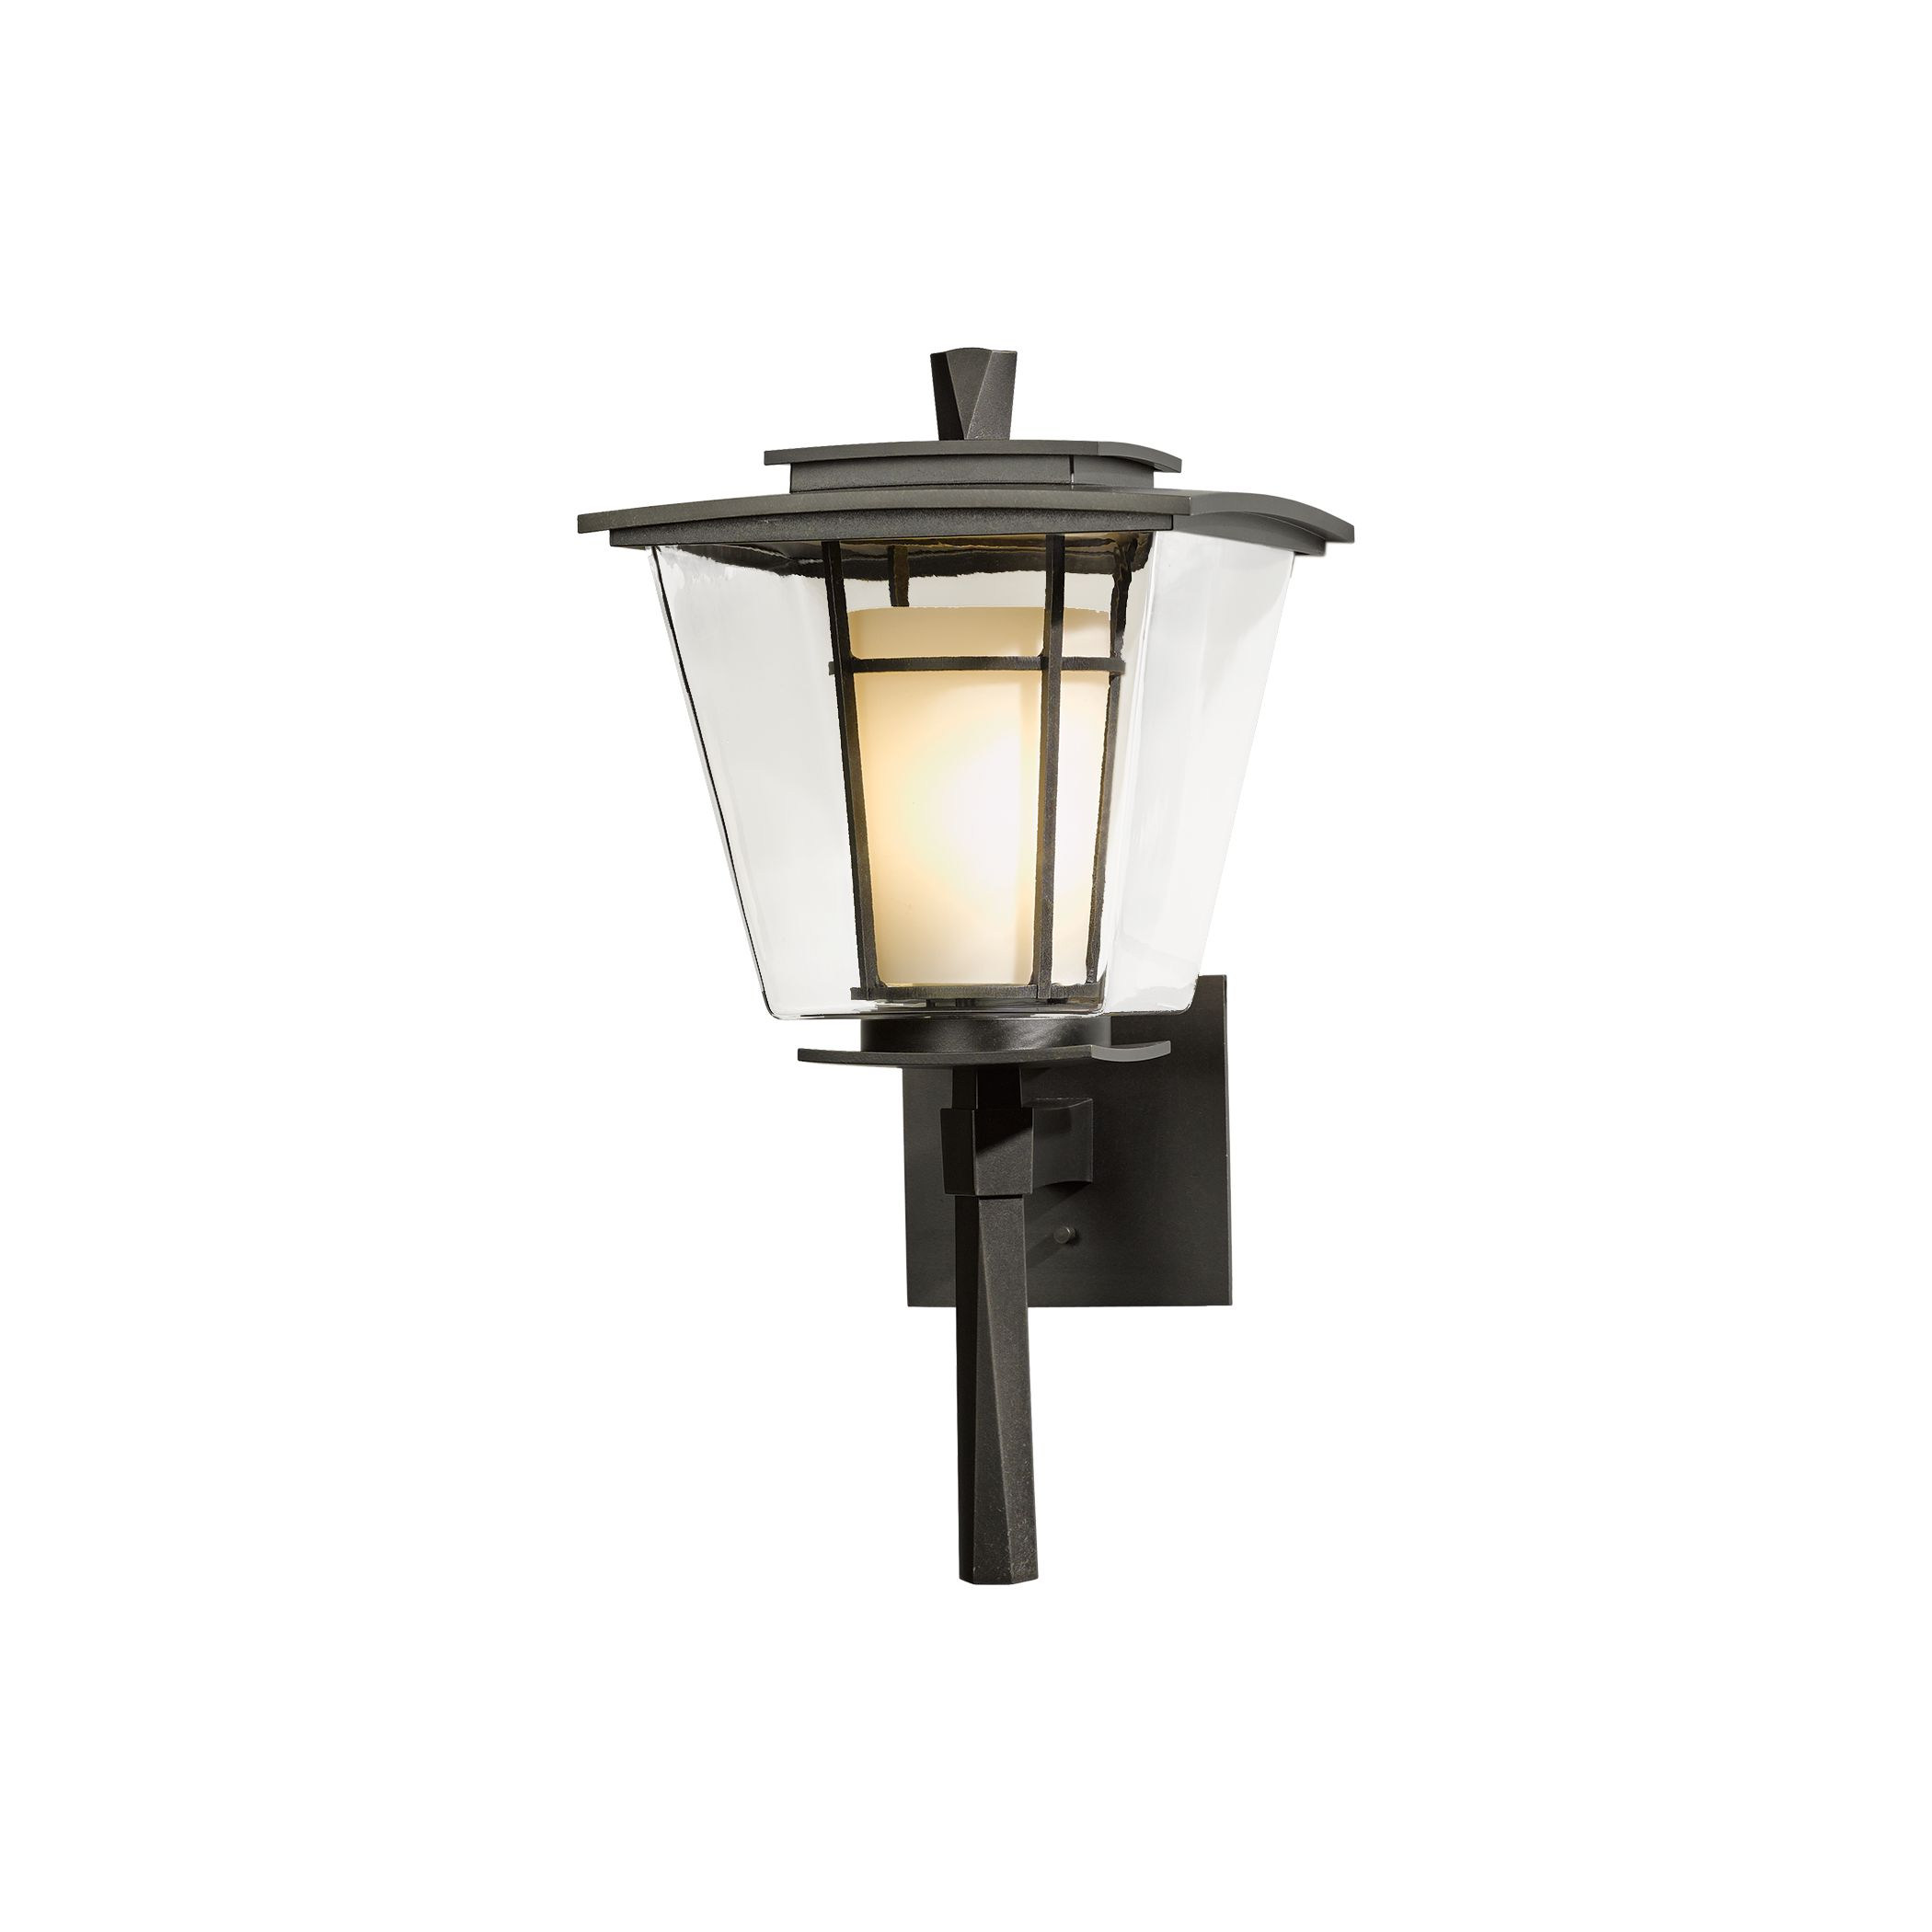 Thumbnail for Beacon Hall Outdoor Sconce